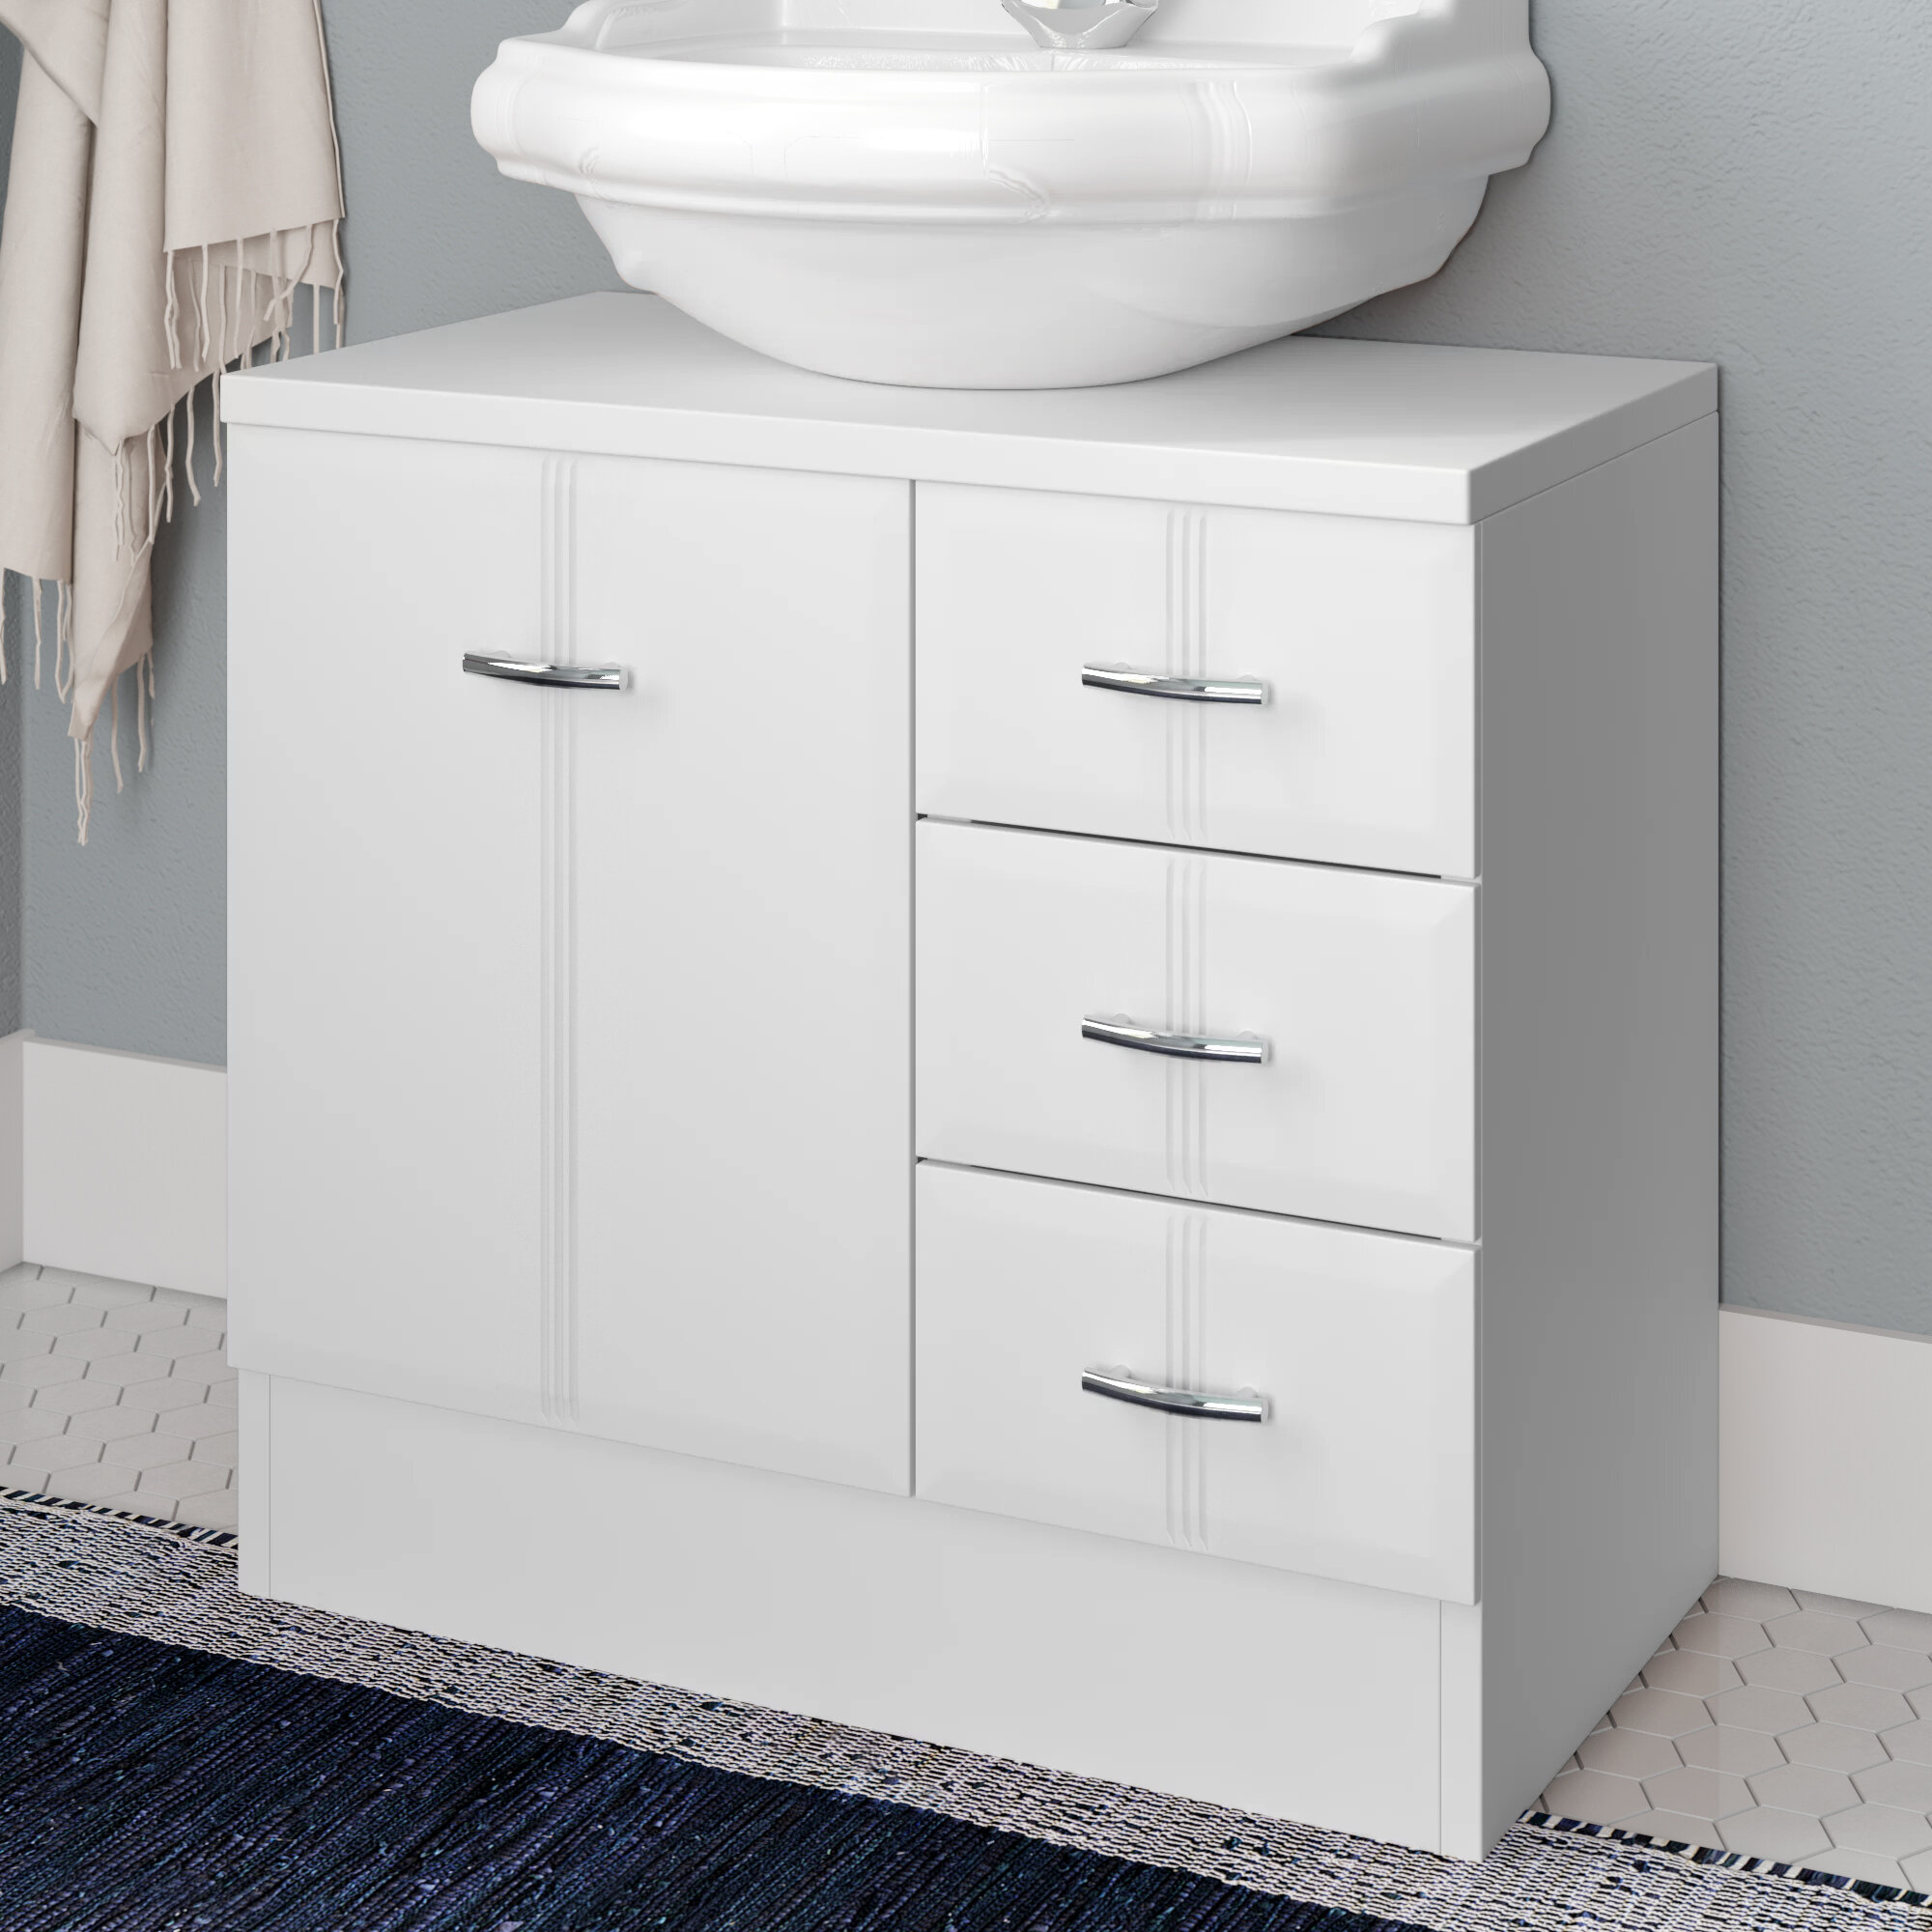 Tillie 60cm Under Sink Storage Unit